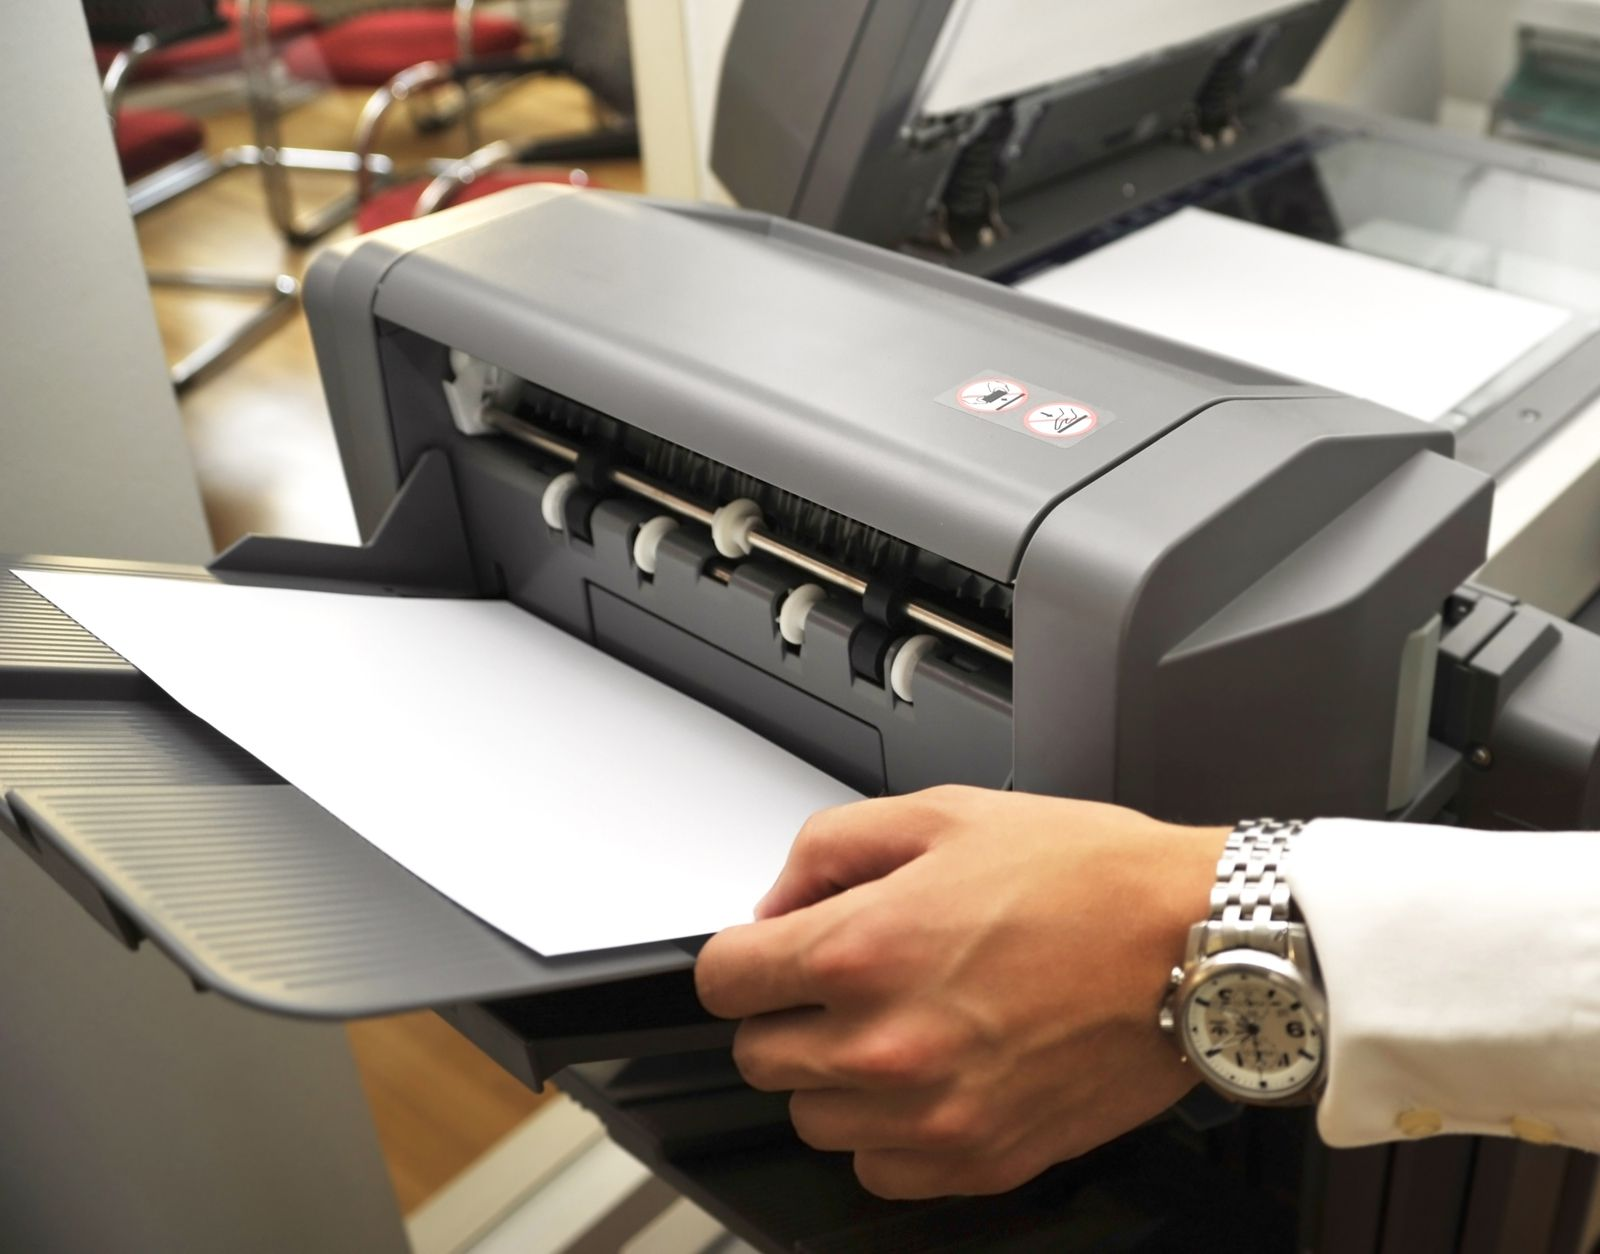 The 8 Best Document Scanners of 2019